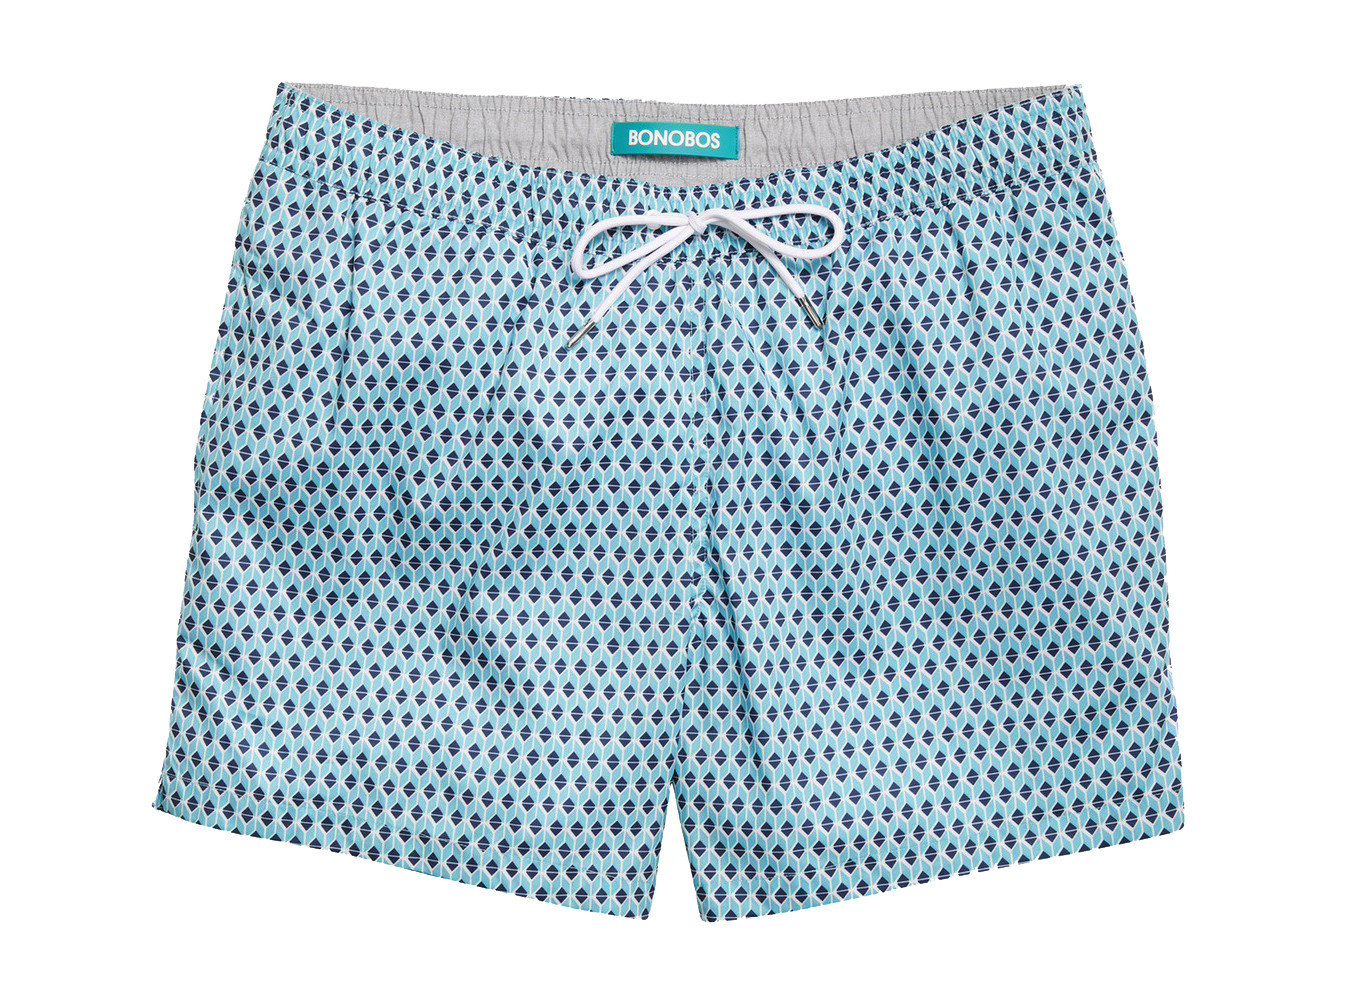 Style + Design clothing blue active shorts aqua shorts trunks product underpants Design swimsuit bottom briefs undergarment swim brief swimwear bermuda shorts pattern